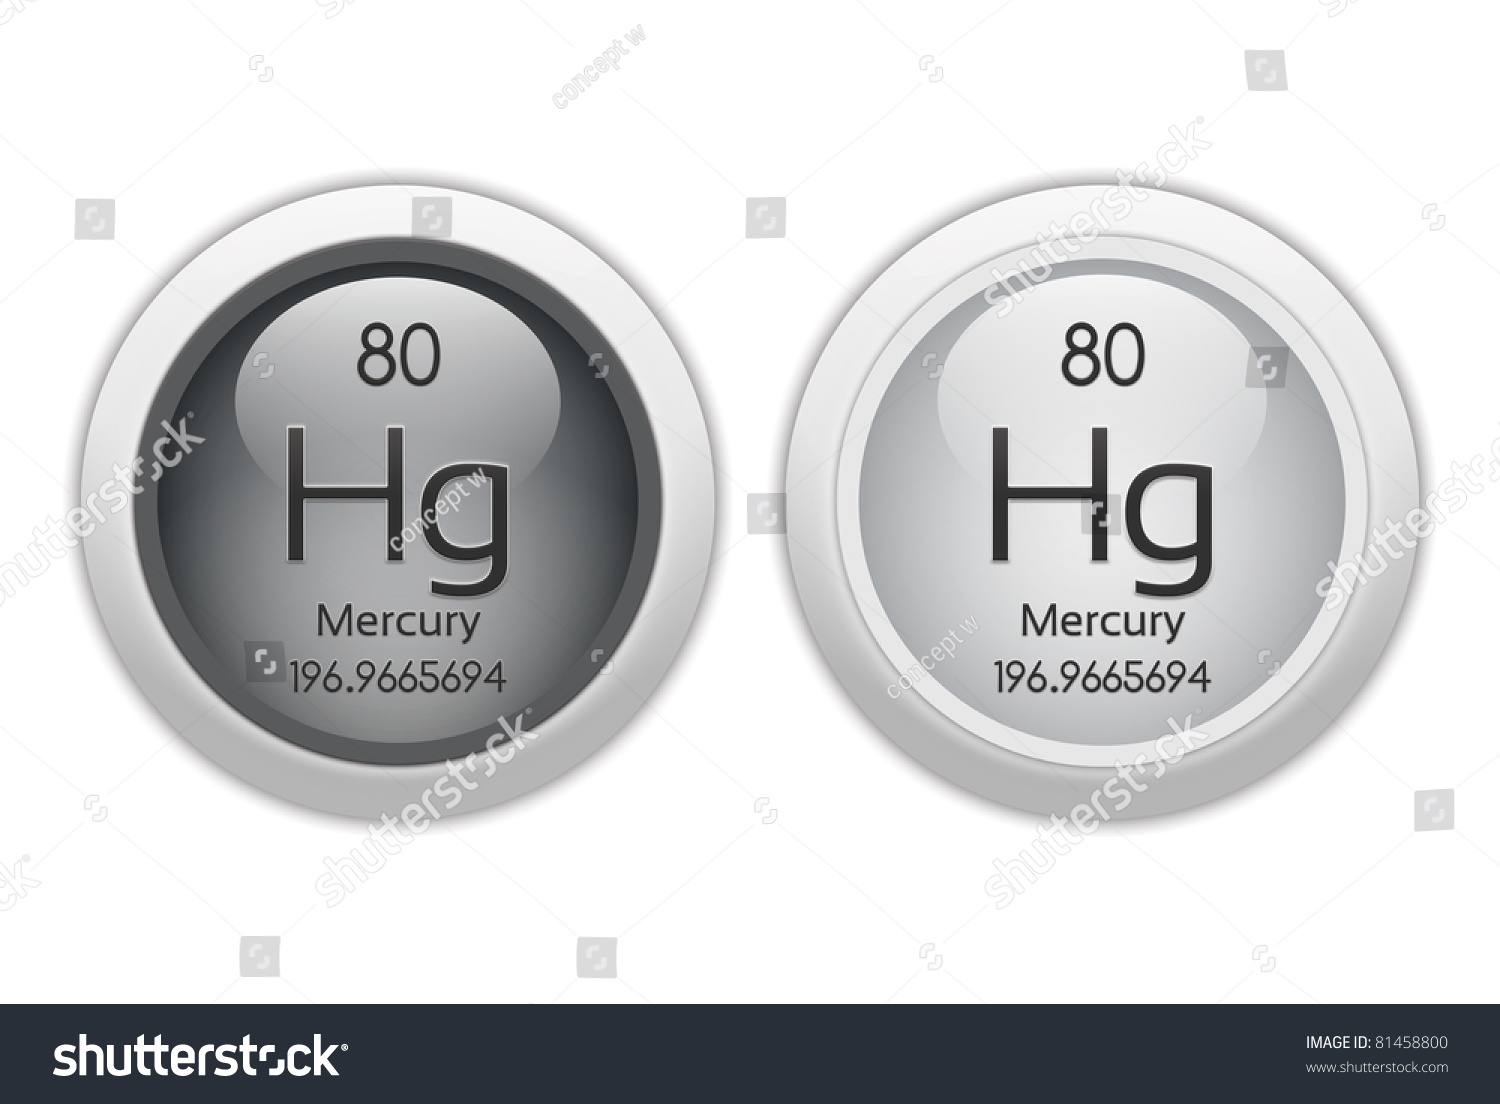 Mercury two web buttons chemical element stock illustration mercury two web buttons chemical element with atomic number 80 it is represented buycottarizona Gallery